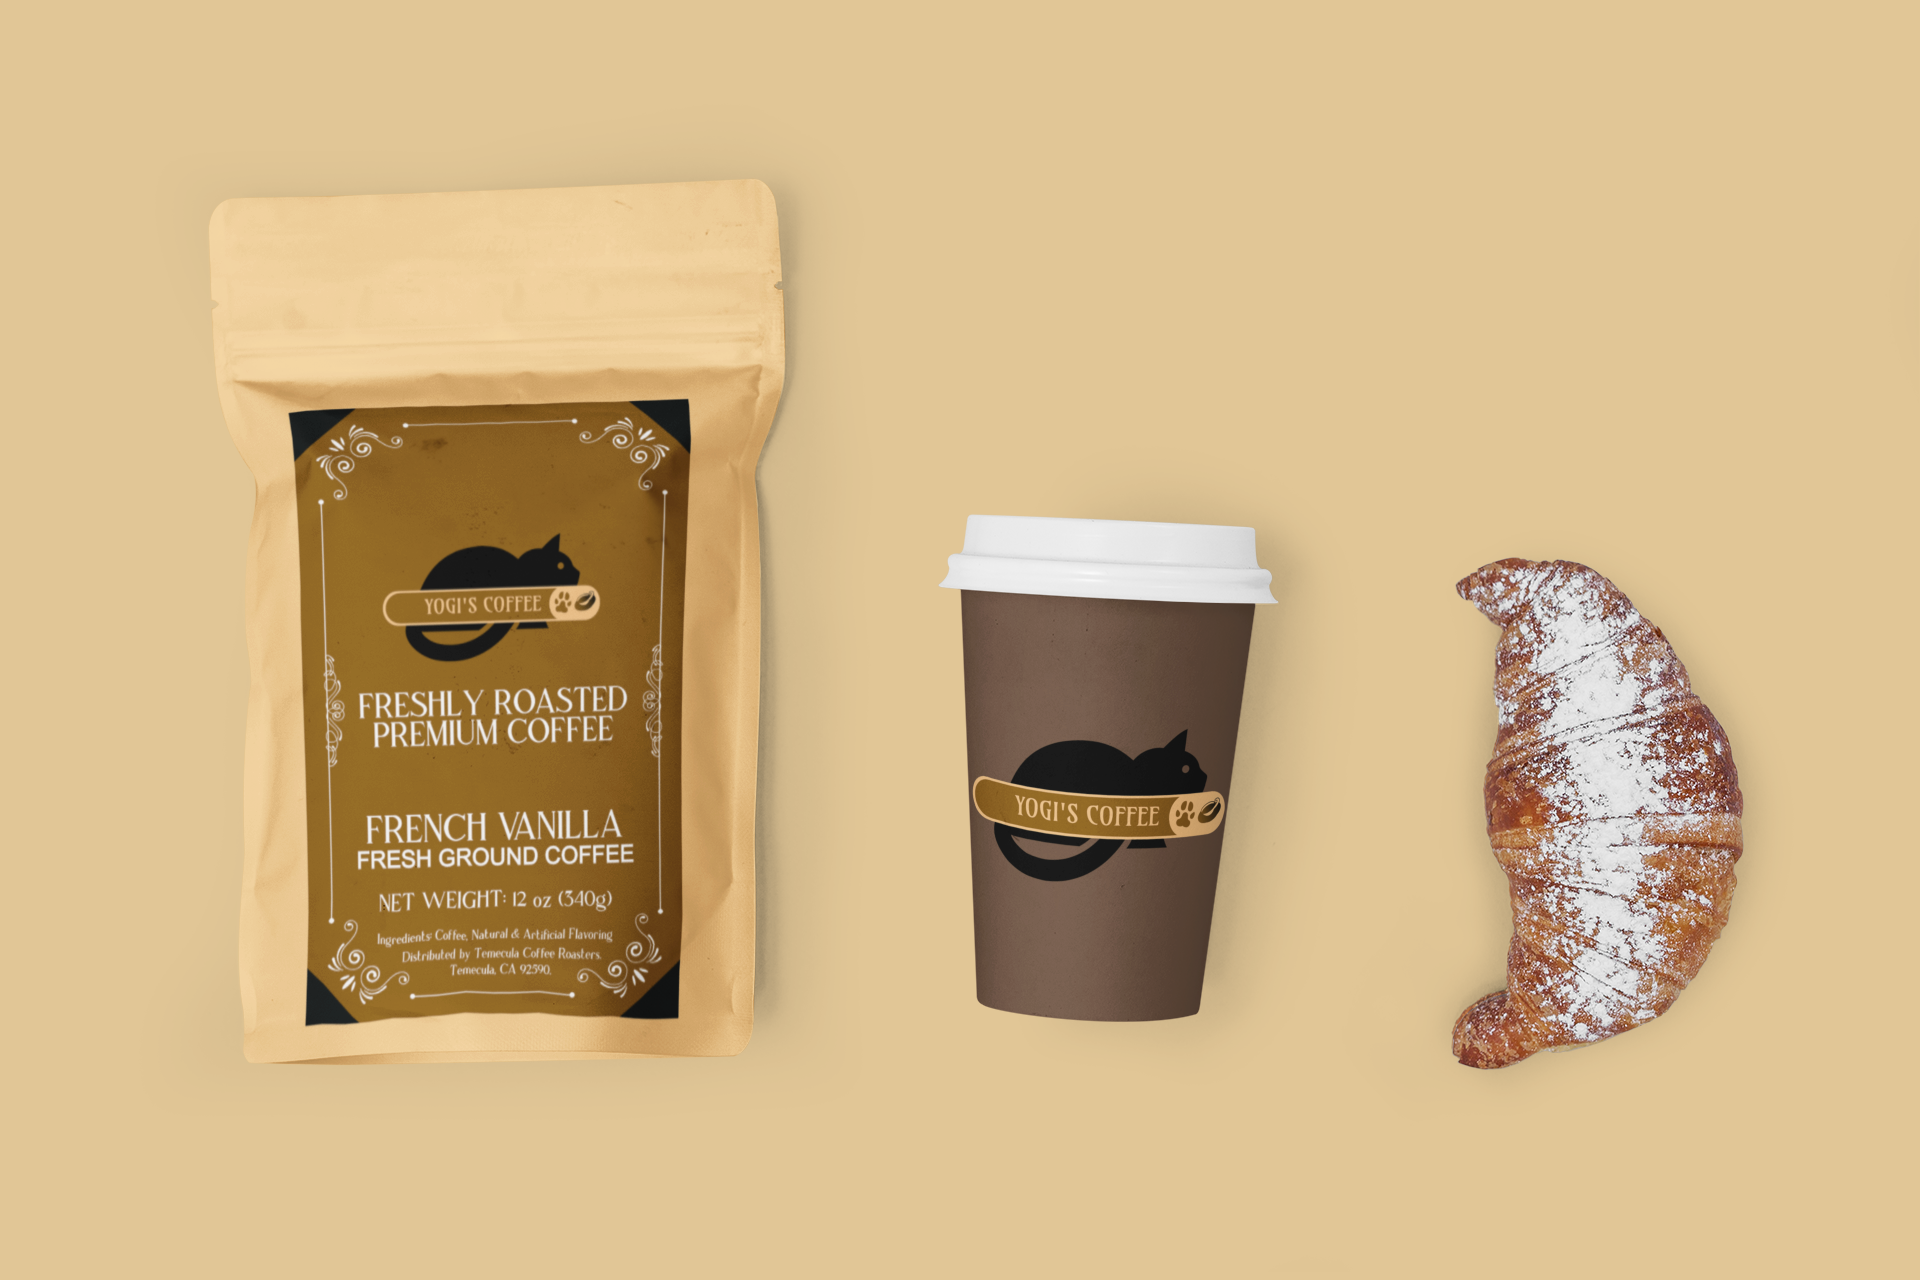 mockup-featuring-a-coffee-cup-and-a-zip-bag-placed-on-a-solid-color-surface-2188-el1.png